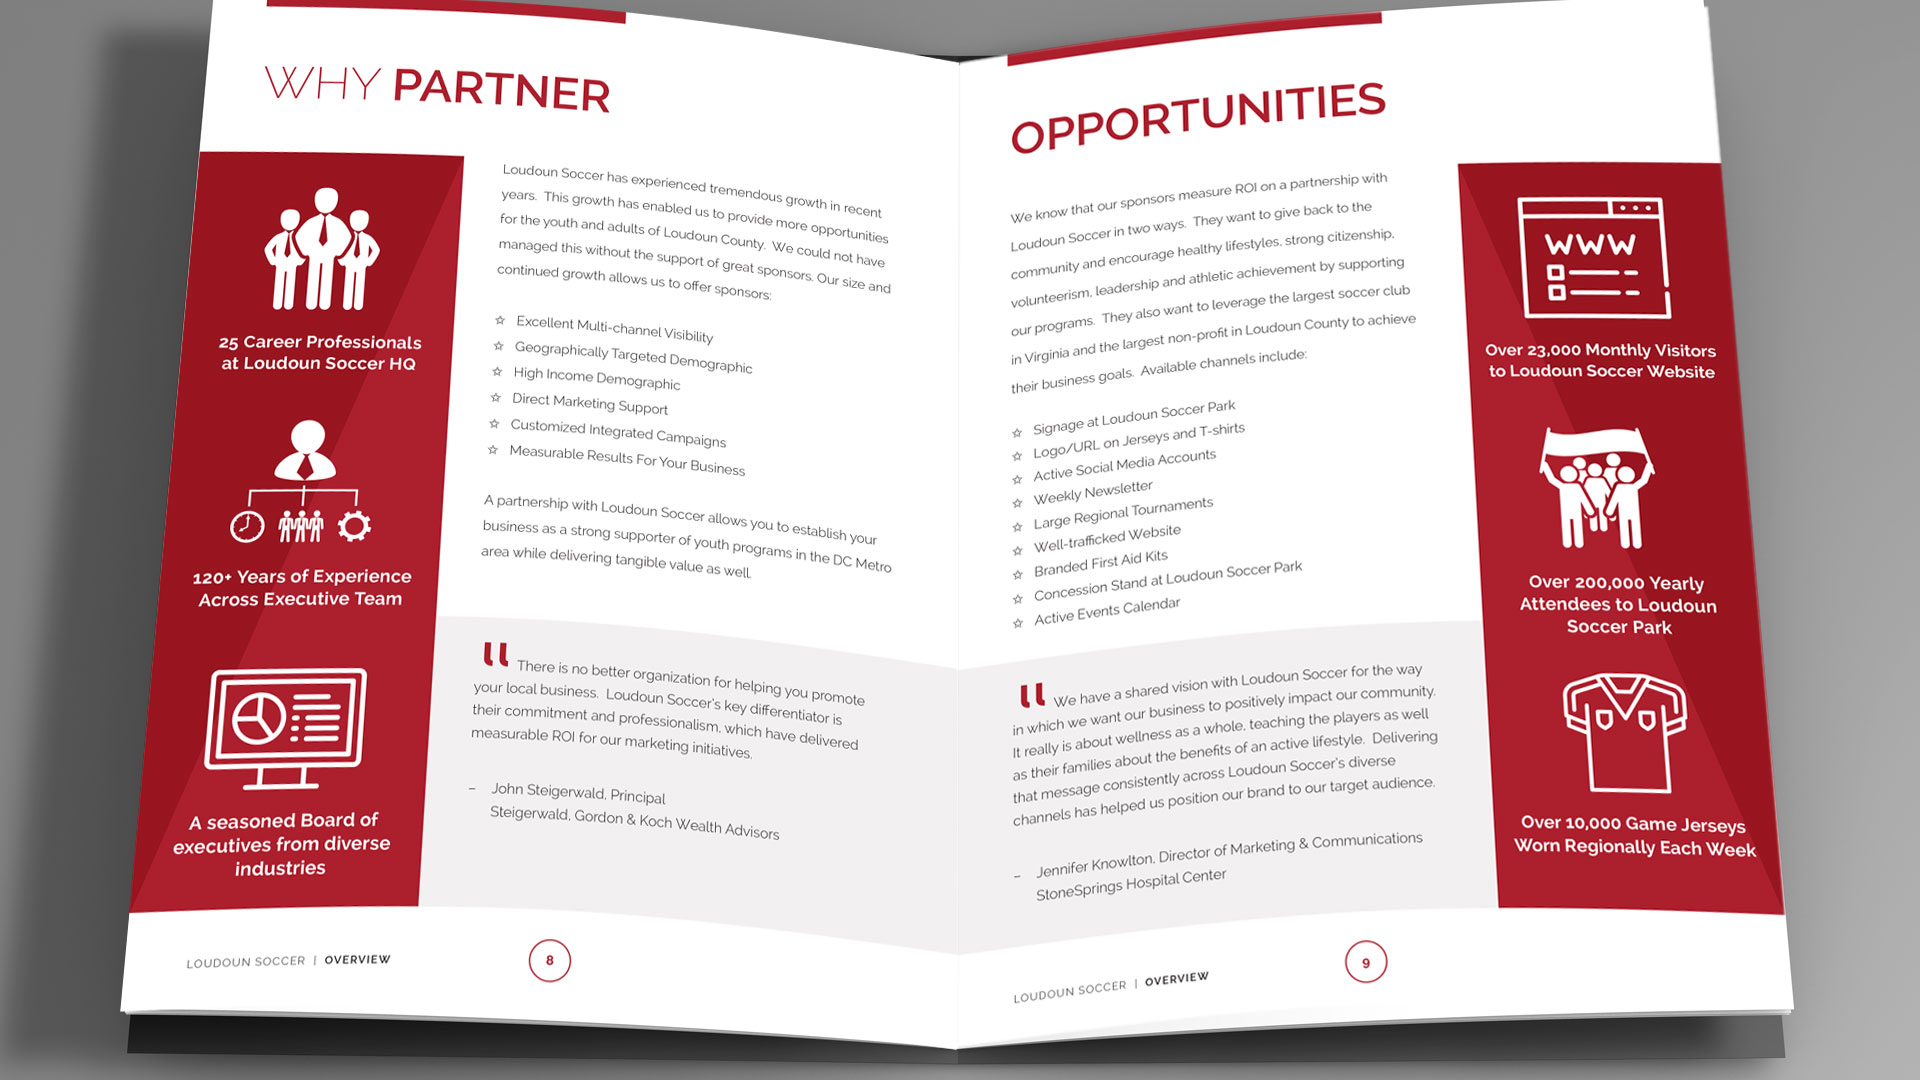 loudoun soccer engaged mesh omnimedia to design and produce a marketing brochure